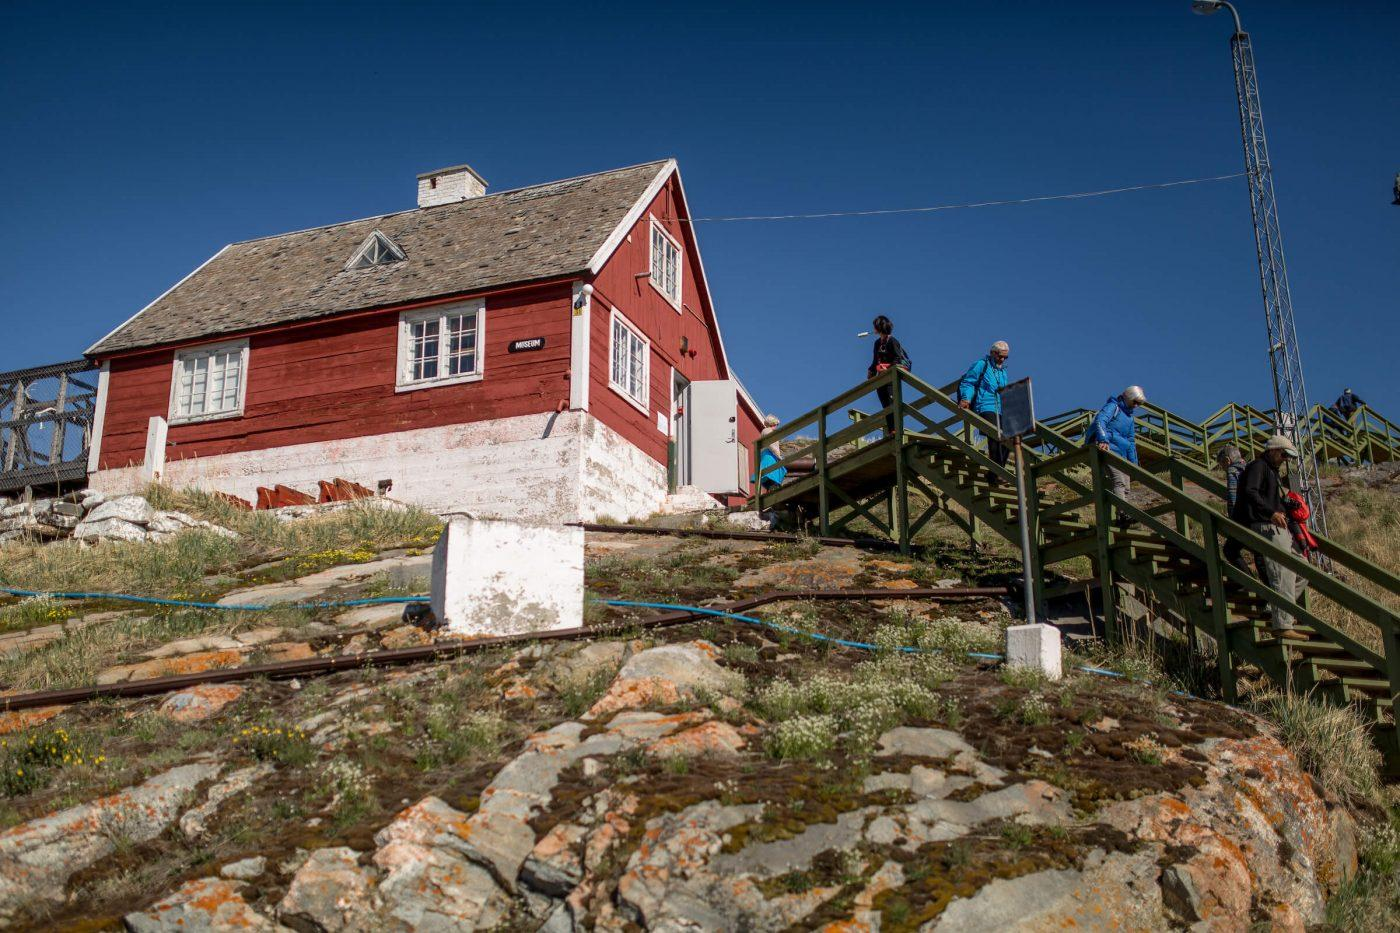 A part of Qasigiannguit Museum in Greenland. Photo by Mads Pihl - Visit Greenland